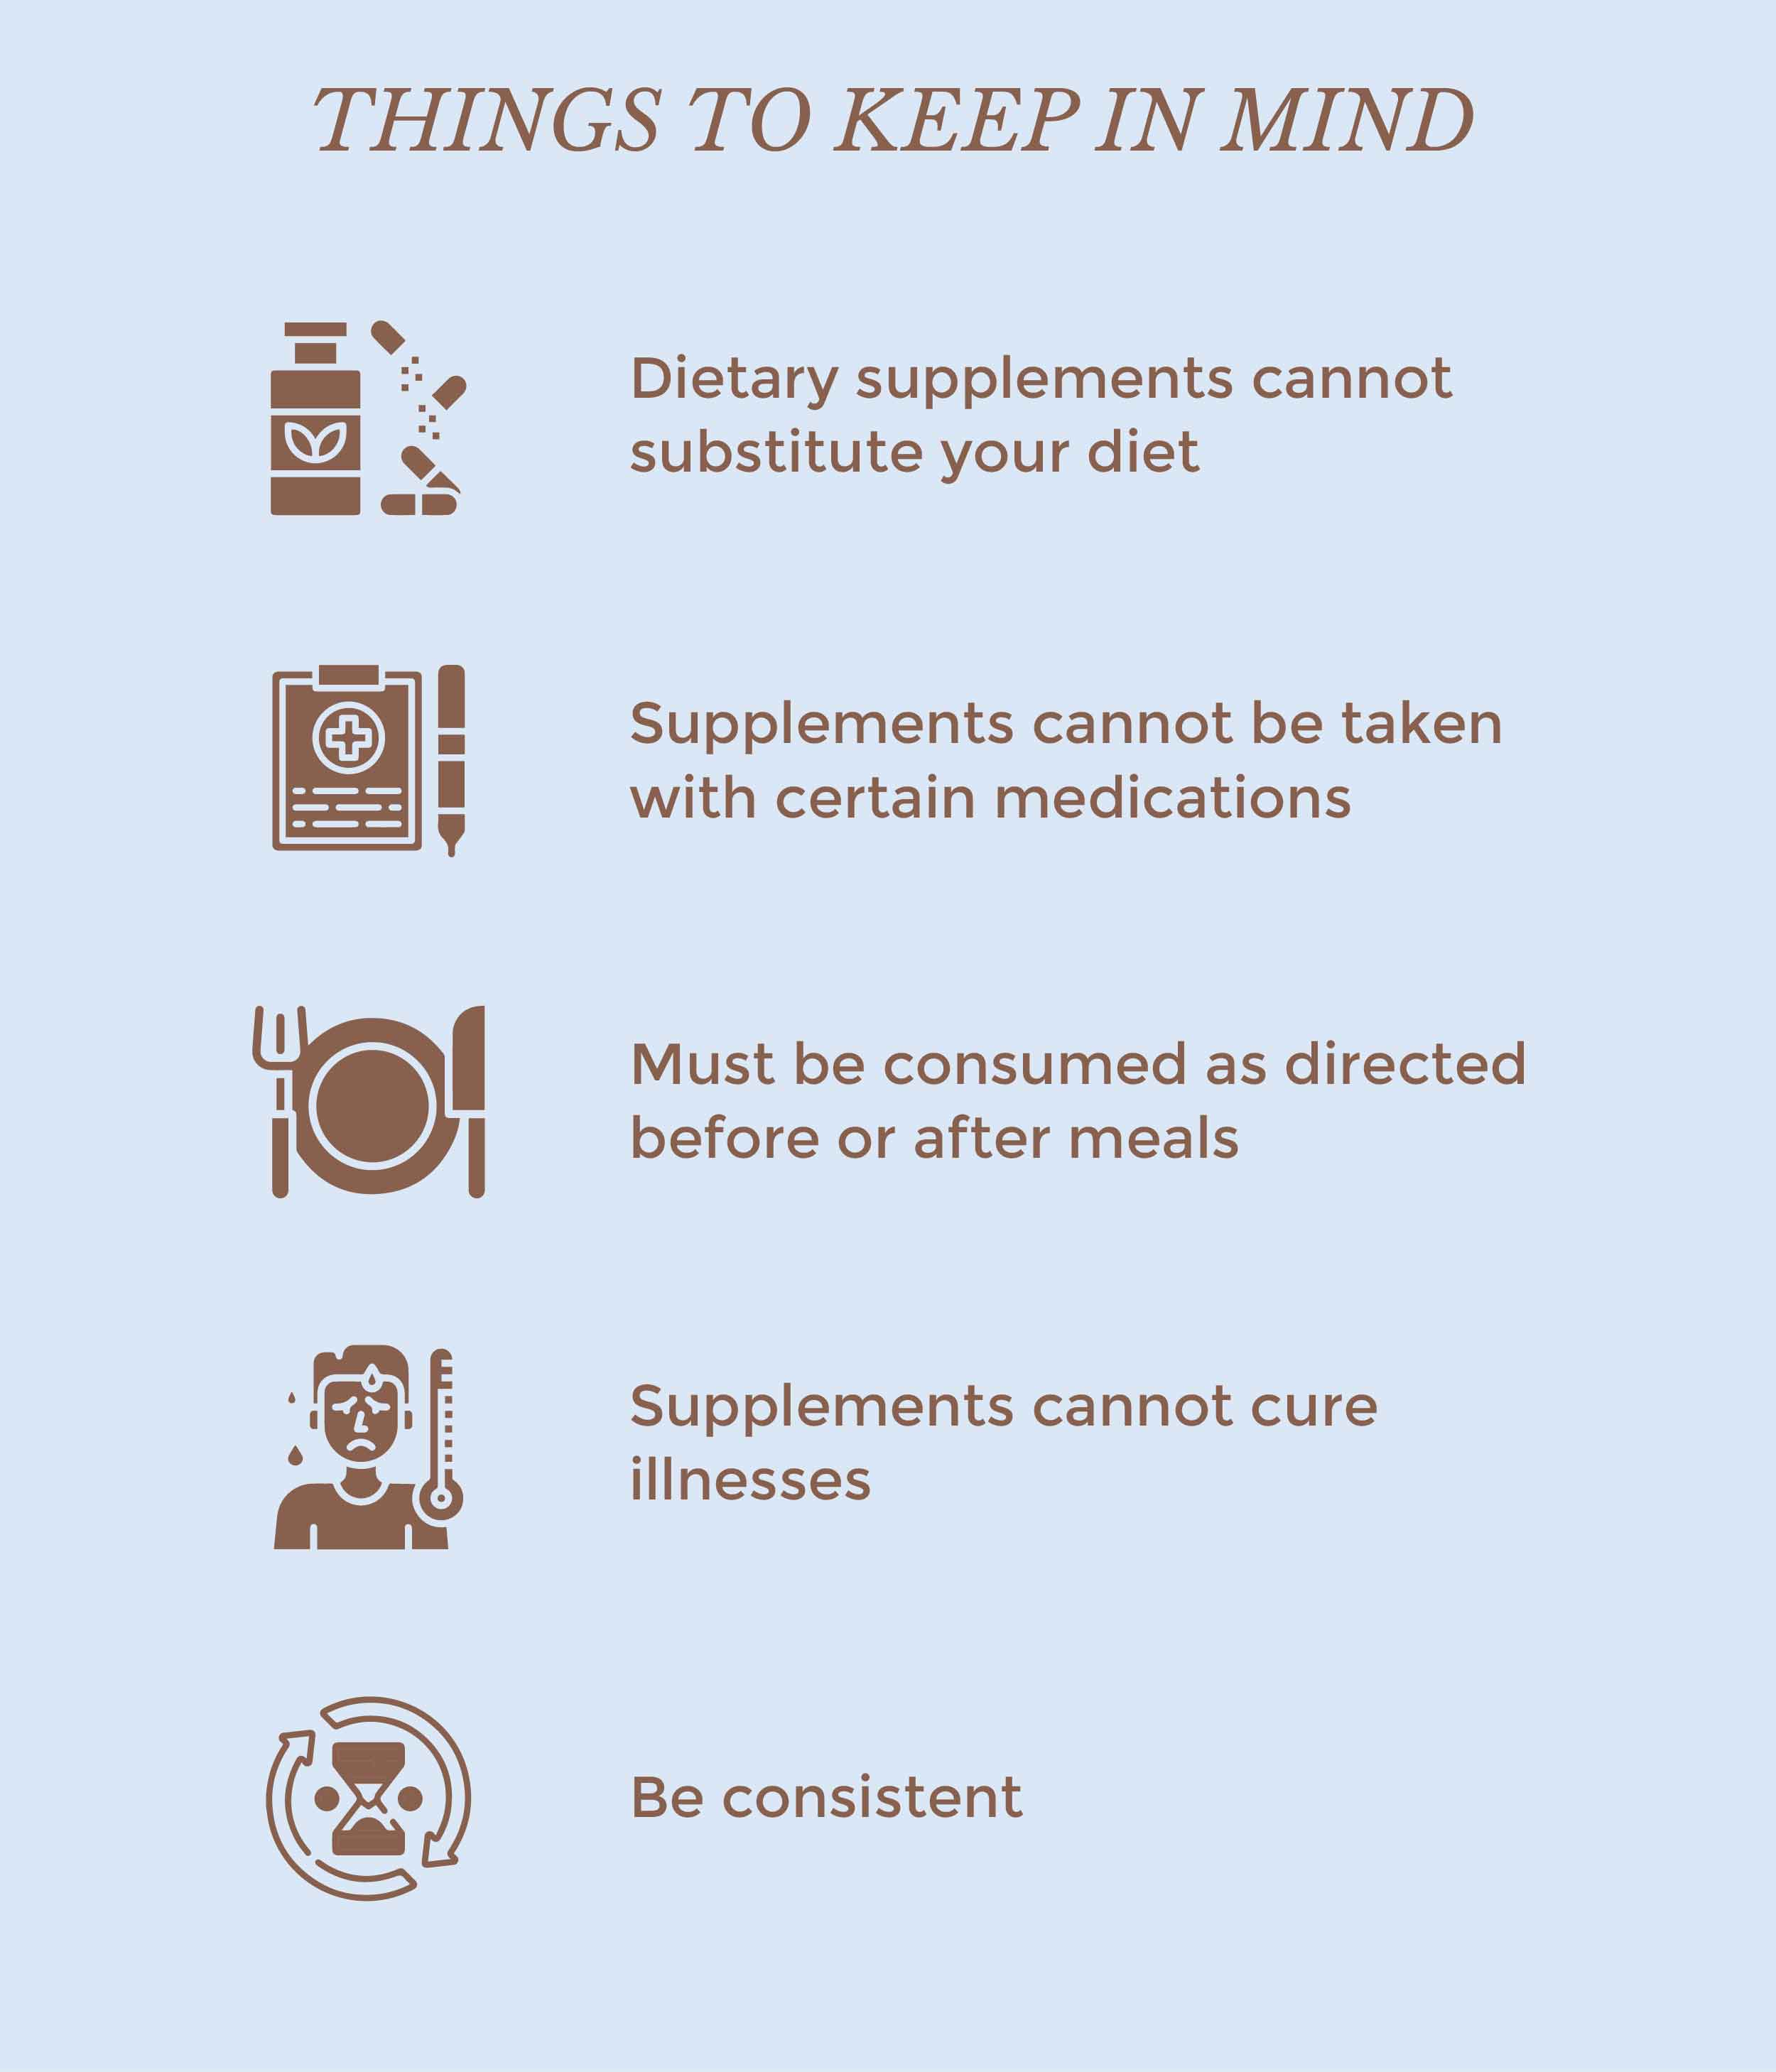 This is an image of things to keep in mind while consuming supplements